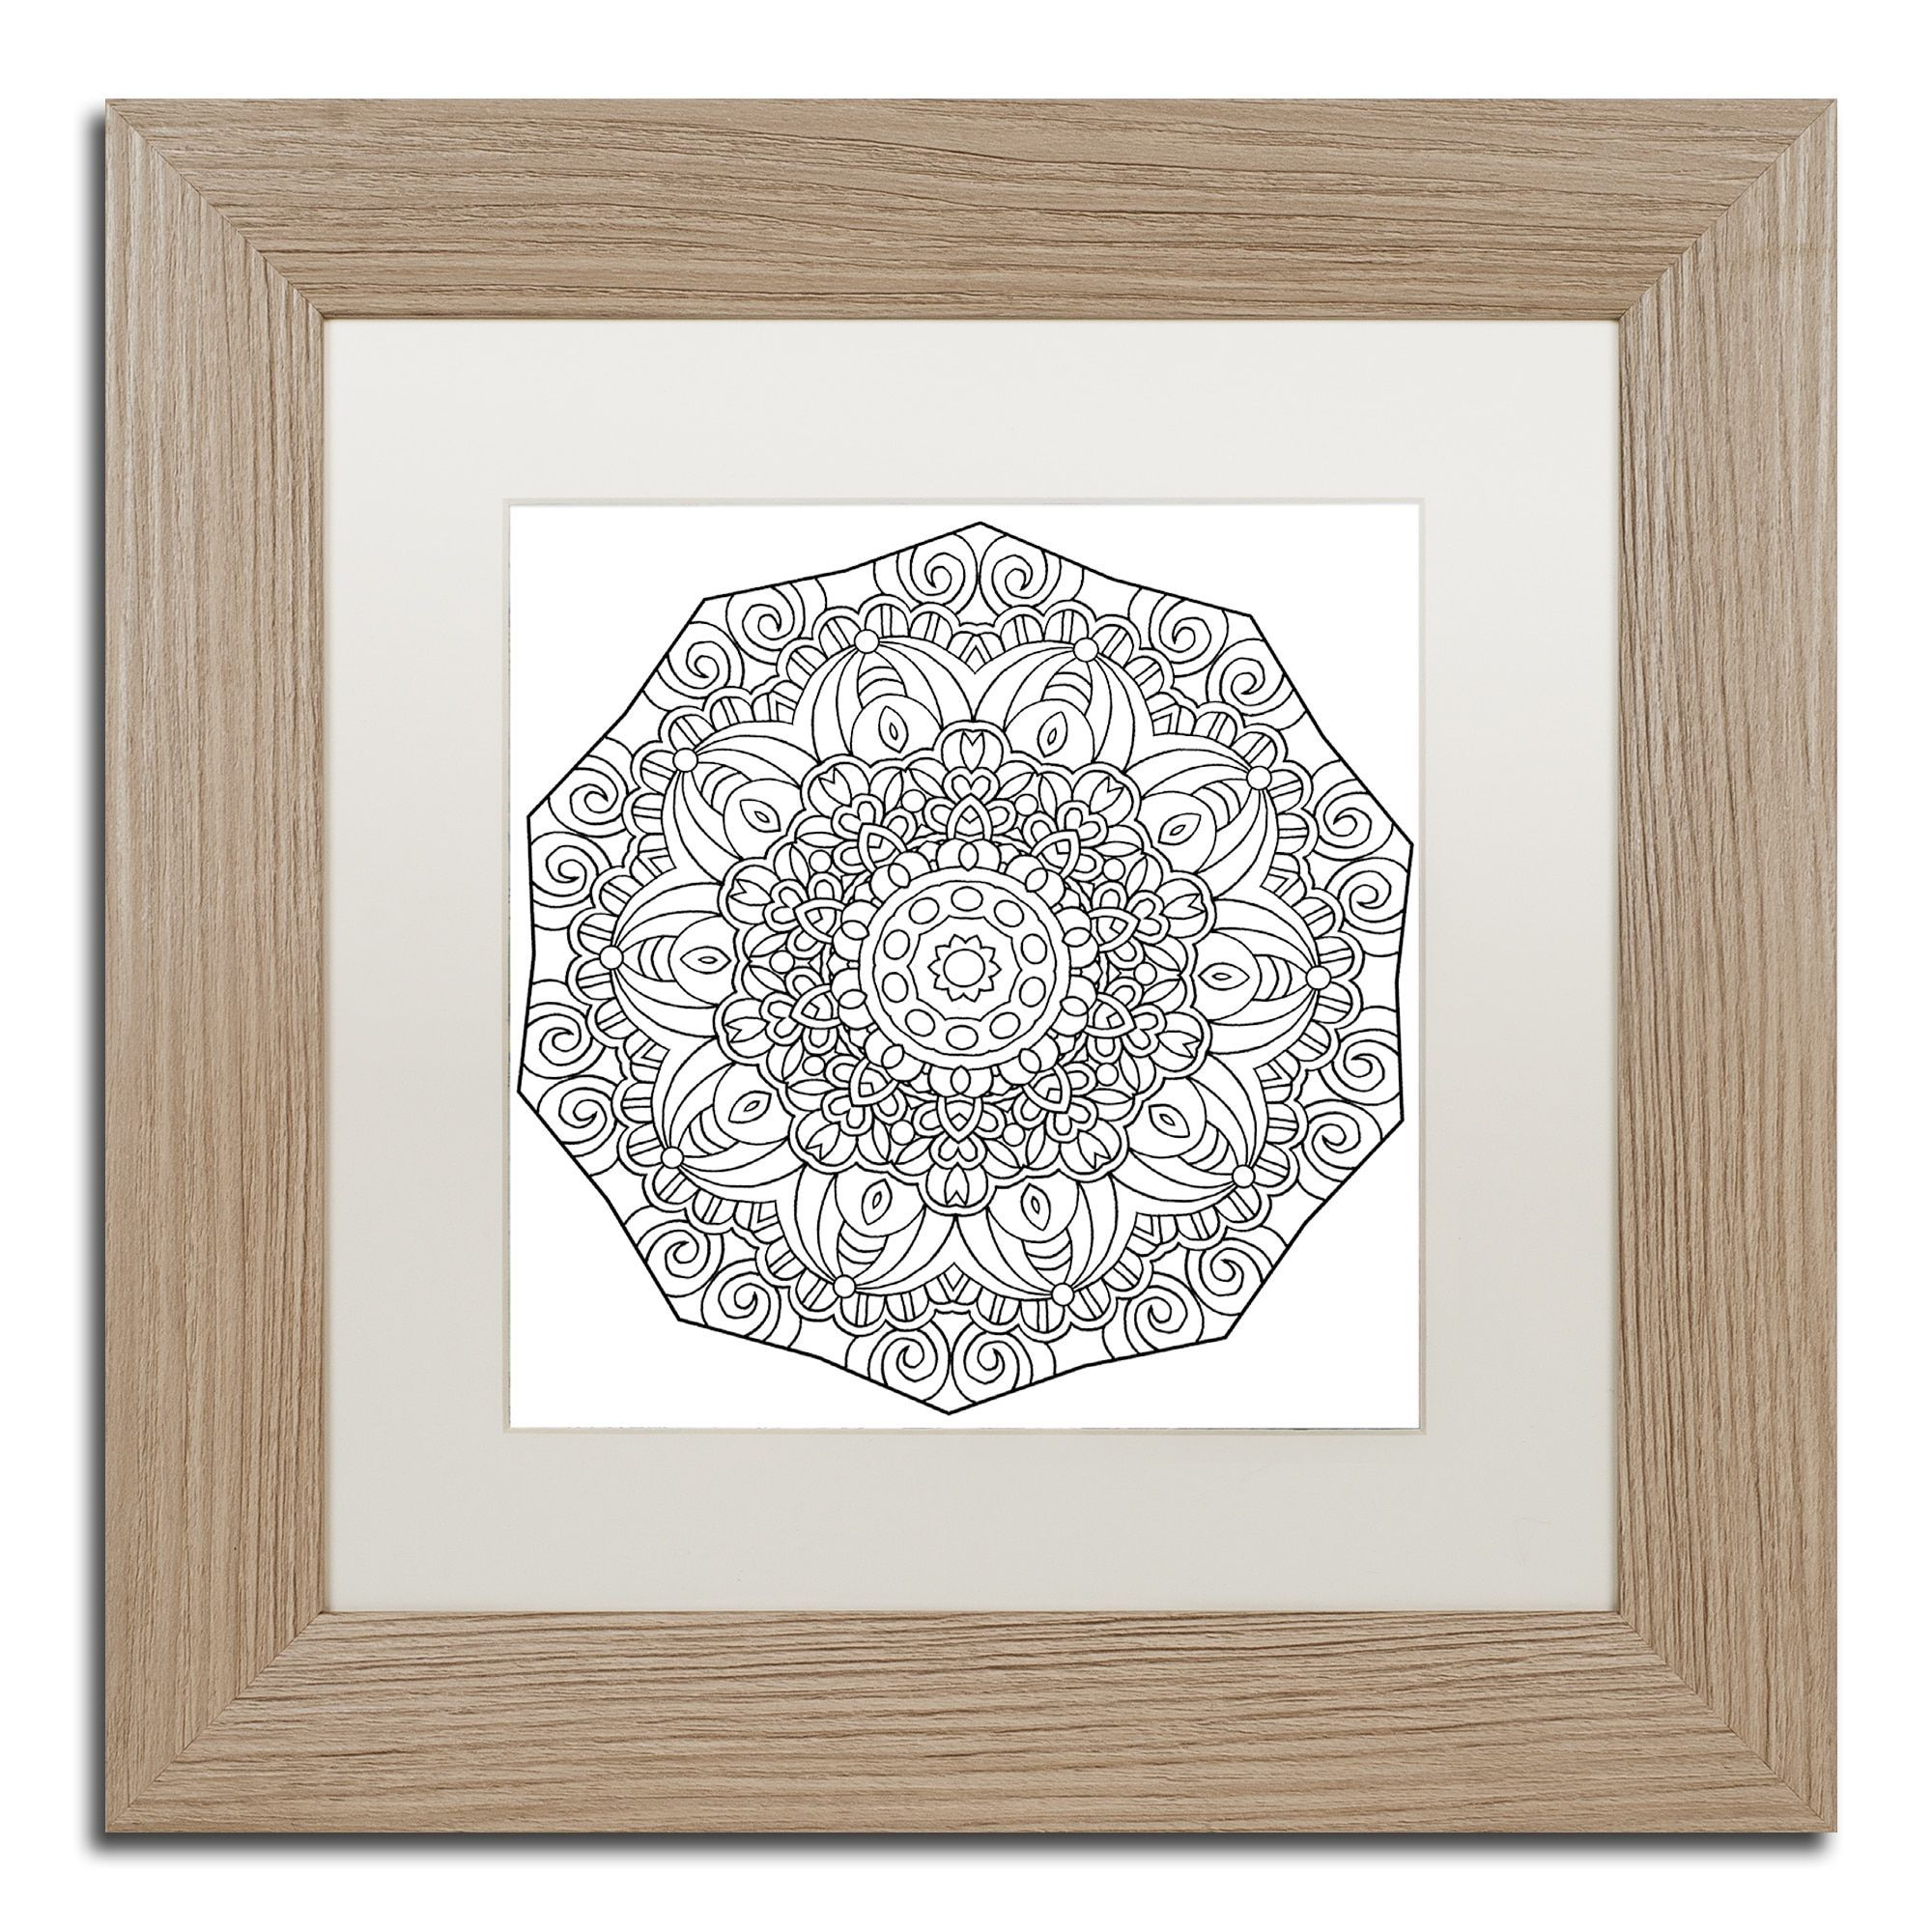 Kathy G. Ahrens 'Mixed Coloring Book 11' Matted Framed Art